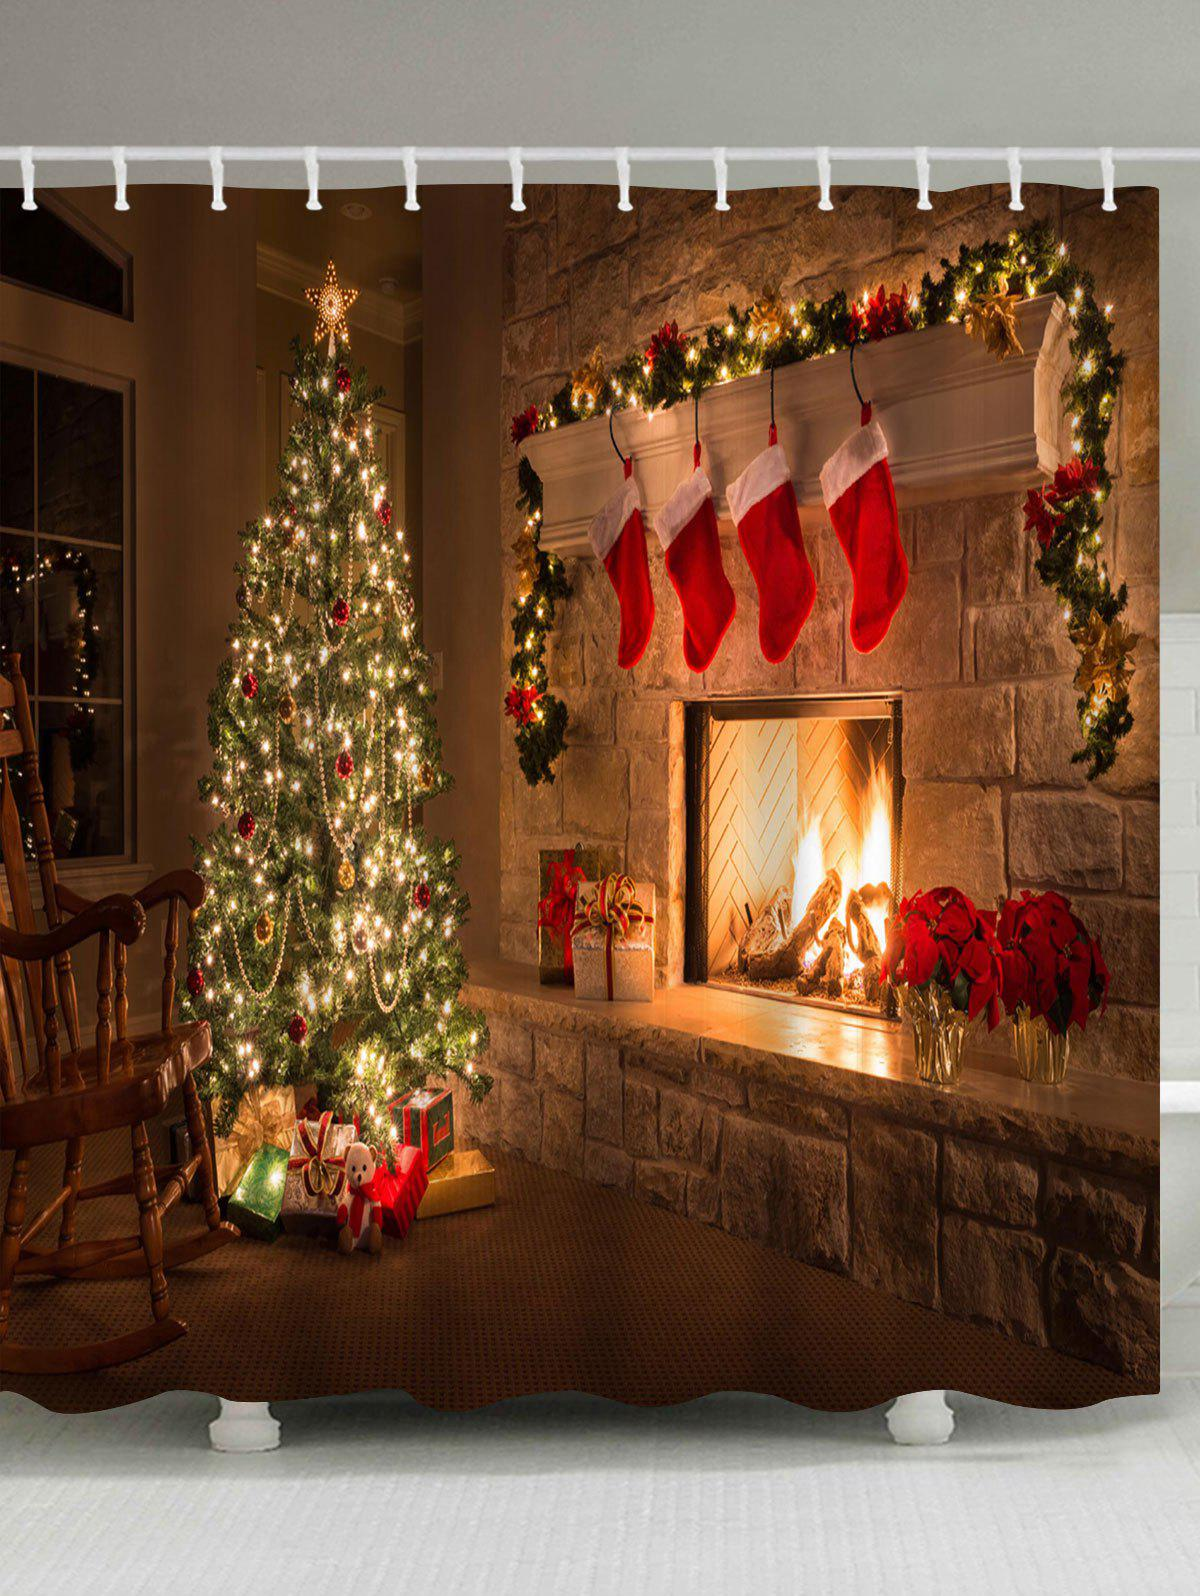 Christmas Fireplace Tree Printed Waterproof Shower CurtainHOME<br><br>Size: W71 INCH * L71 INCH; Color: BROWN; Products Type: Shower Curtains; Materials: Polyester; Pattern: Christmas Tree; Style: Festival; Number of Hook Holes: W59 inch*L71 inch: 10; W71 inch*L71 inch: 12; W71 inch*L79 inch: 12; Package Contents: 1 x Shower Curtain 1 x Hooks (Set);